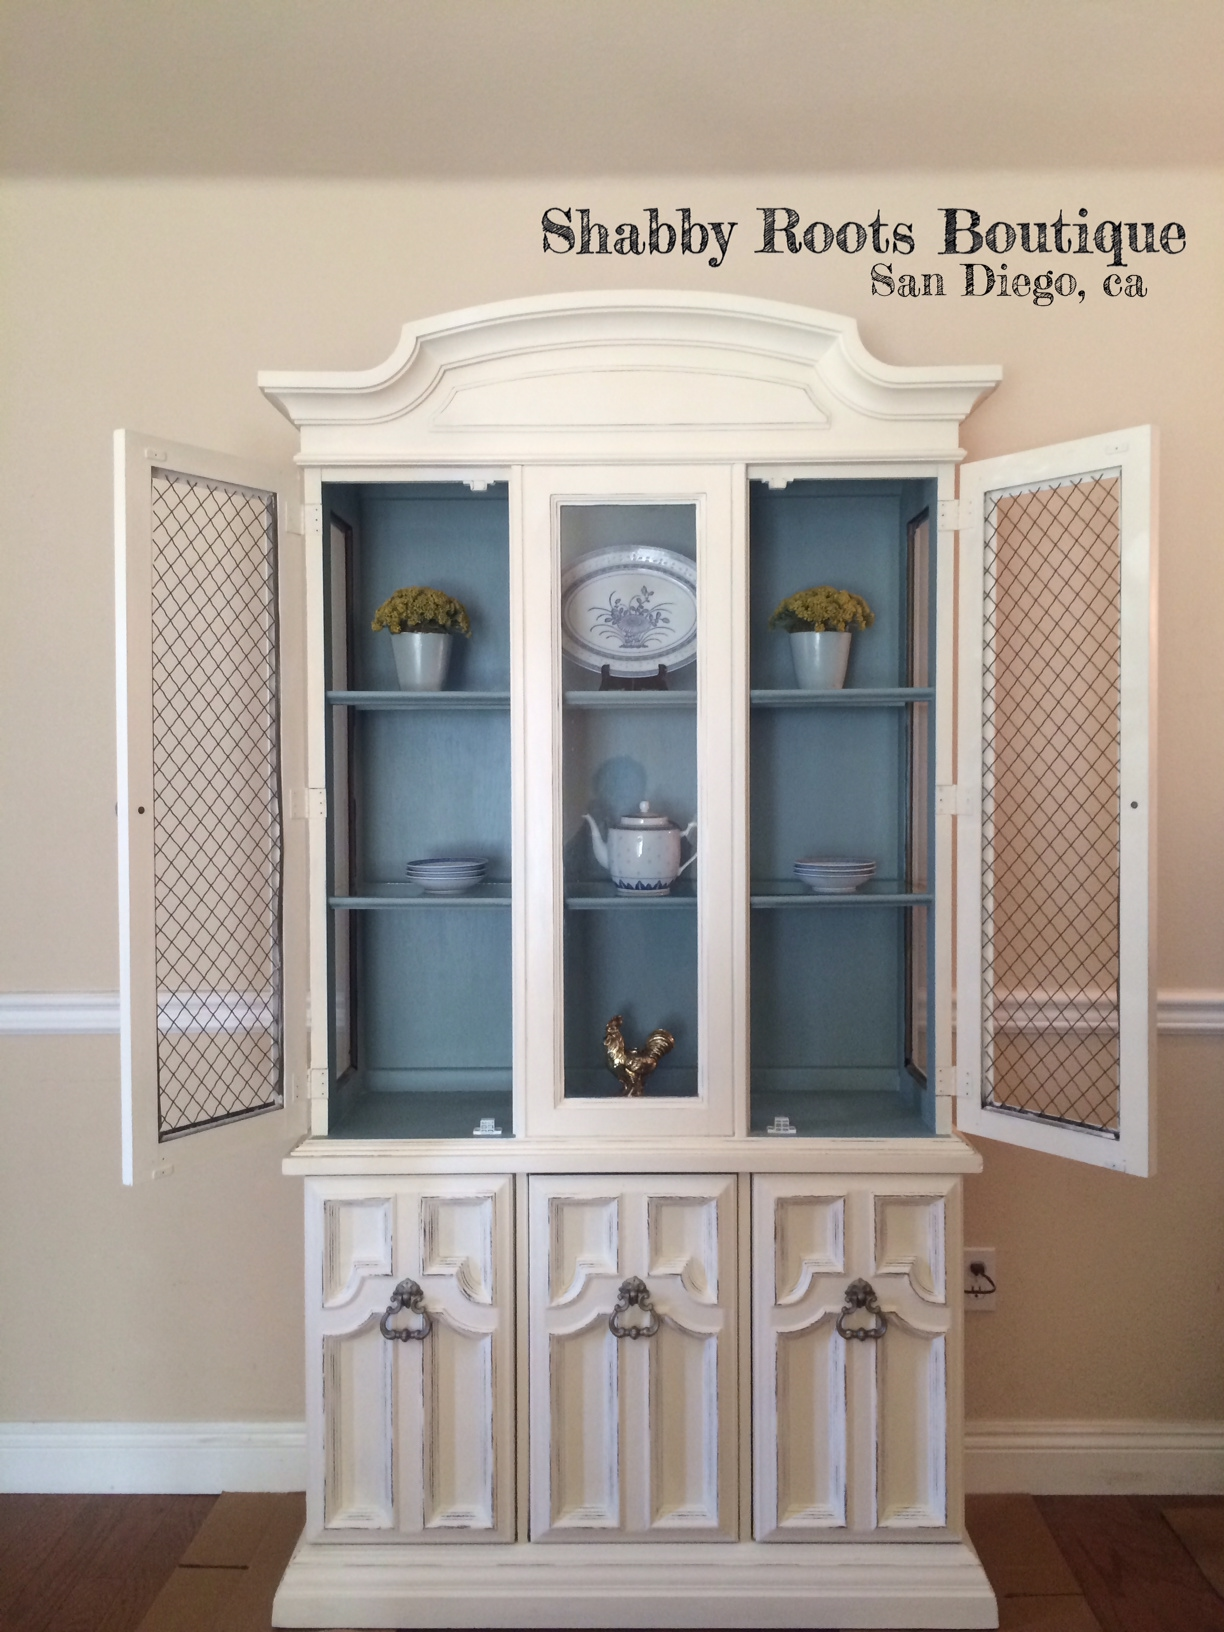 Antique shabby chic China Cabinet  Shabby Roots Boutique